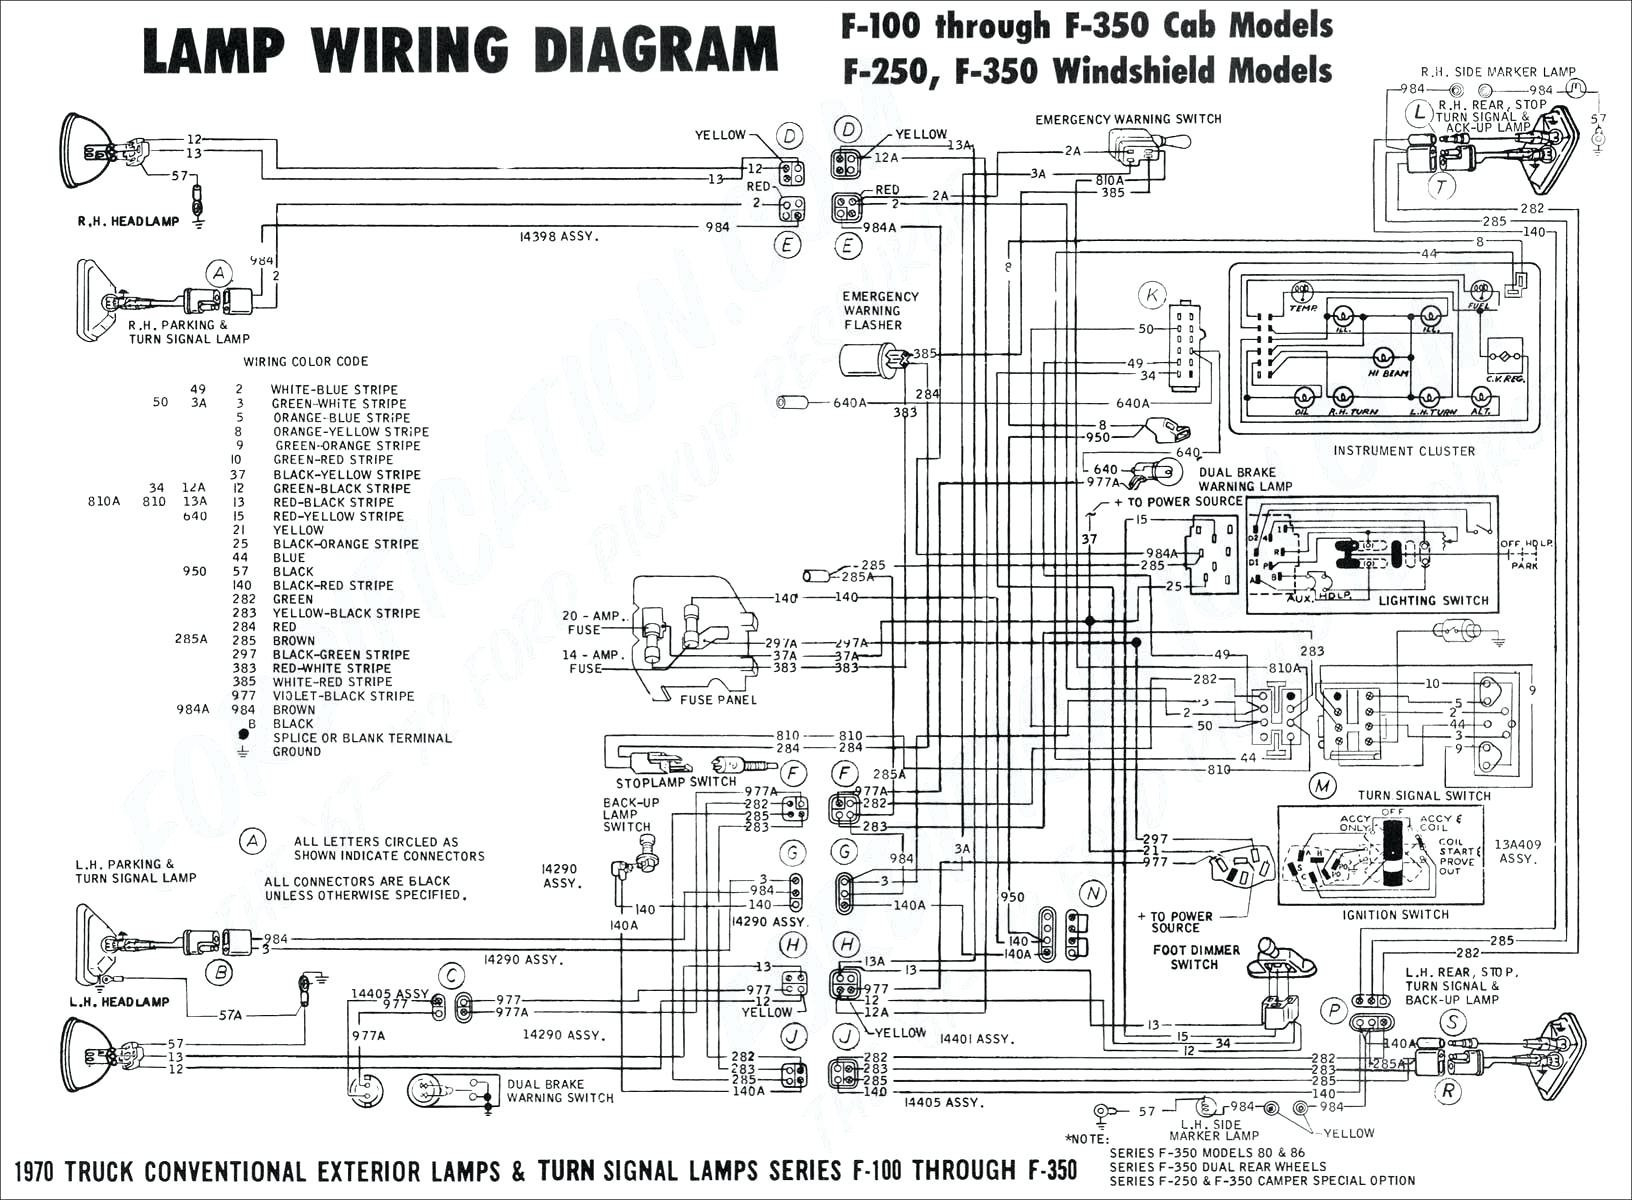 Mack Alternator Wiring Diagram For You Light Switch 3 Wires Wire Schematic Diagrams One